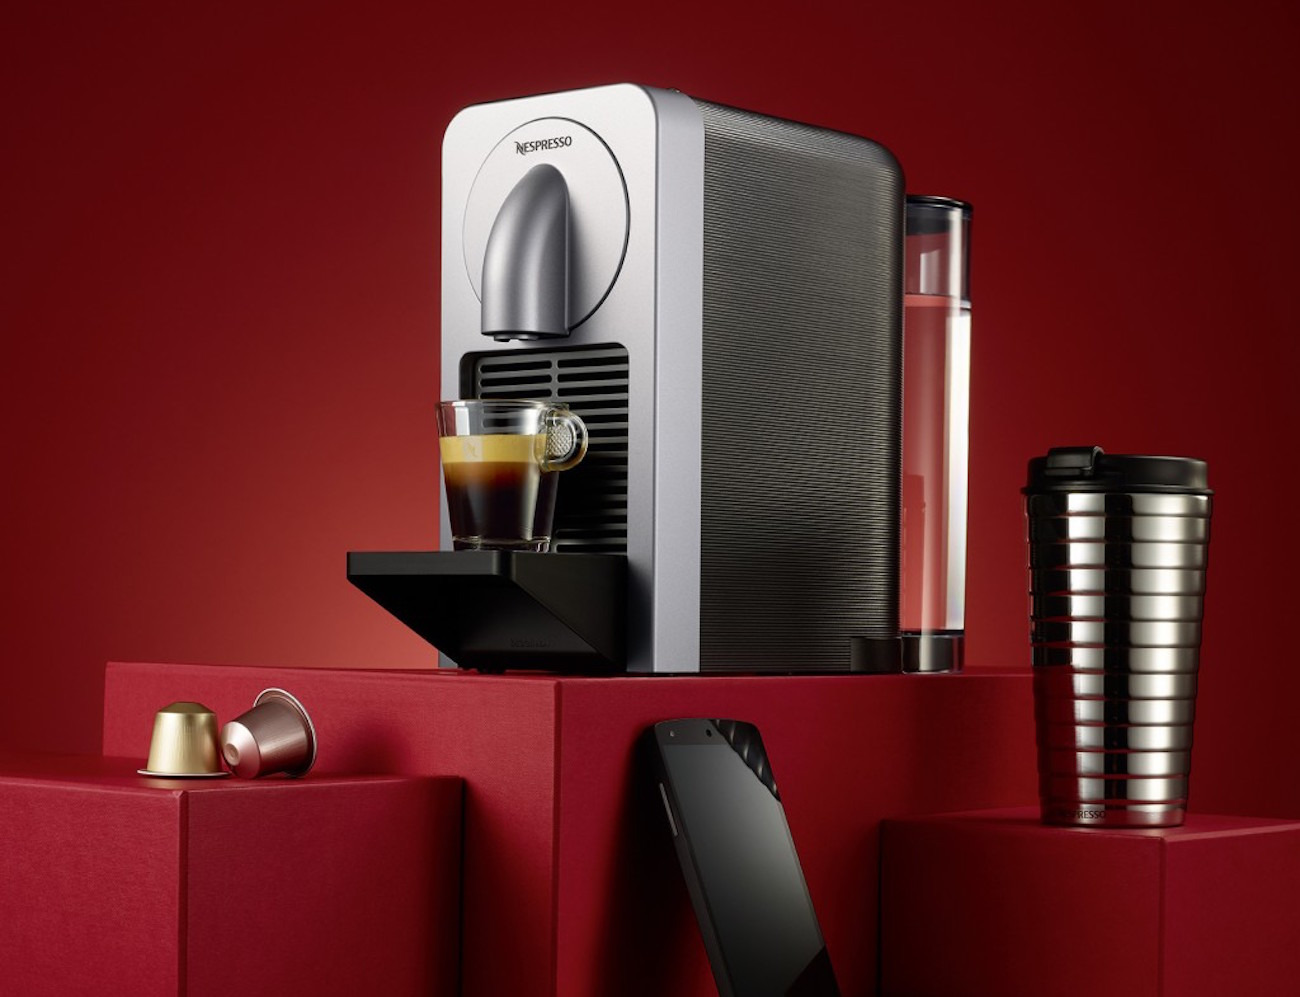 Nespresso Prodigo Smart Espresso Machine 187 Gadget Flow